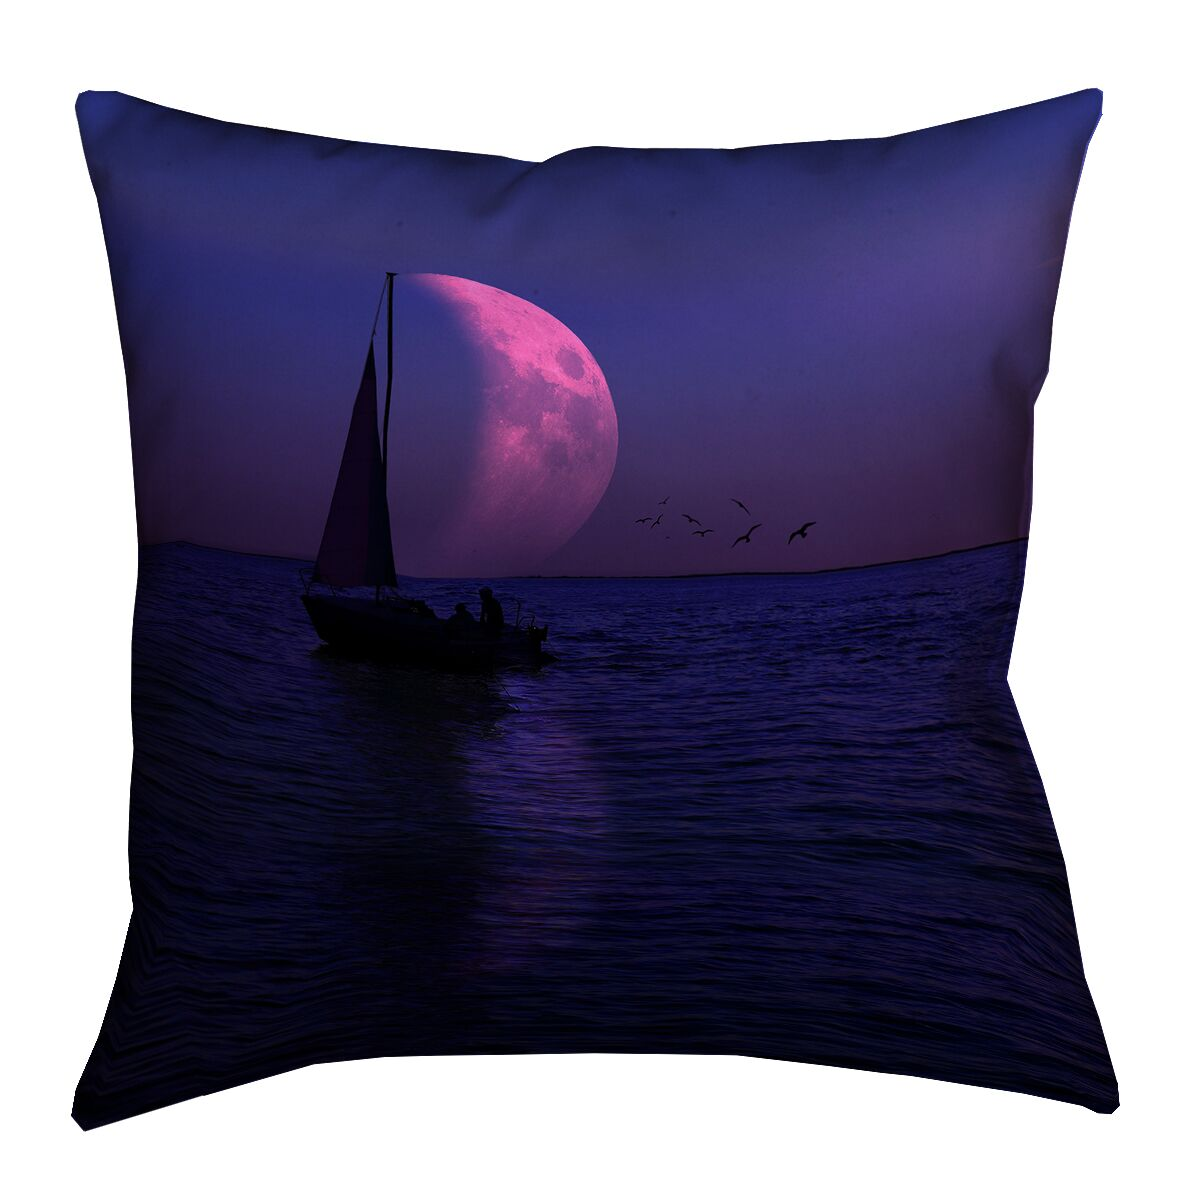 Jada Moon and Sailboat Pillow Cover Size: 14